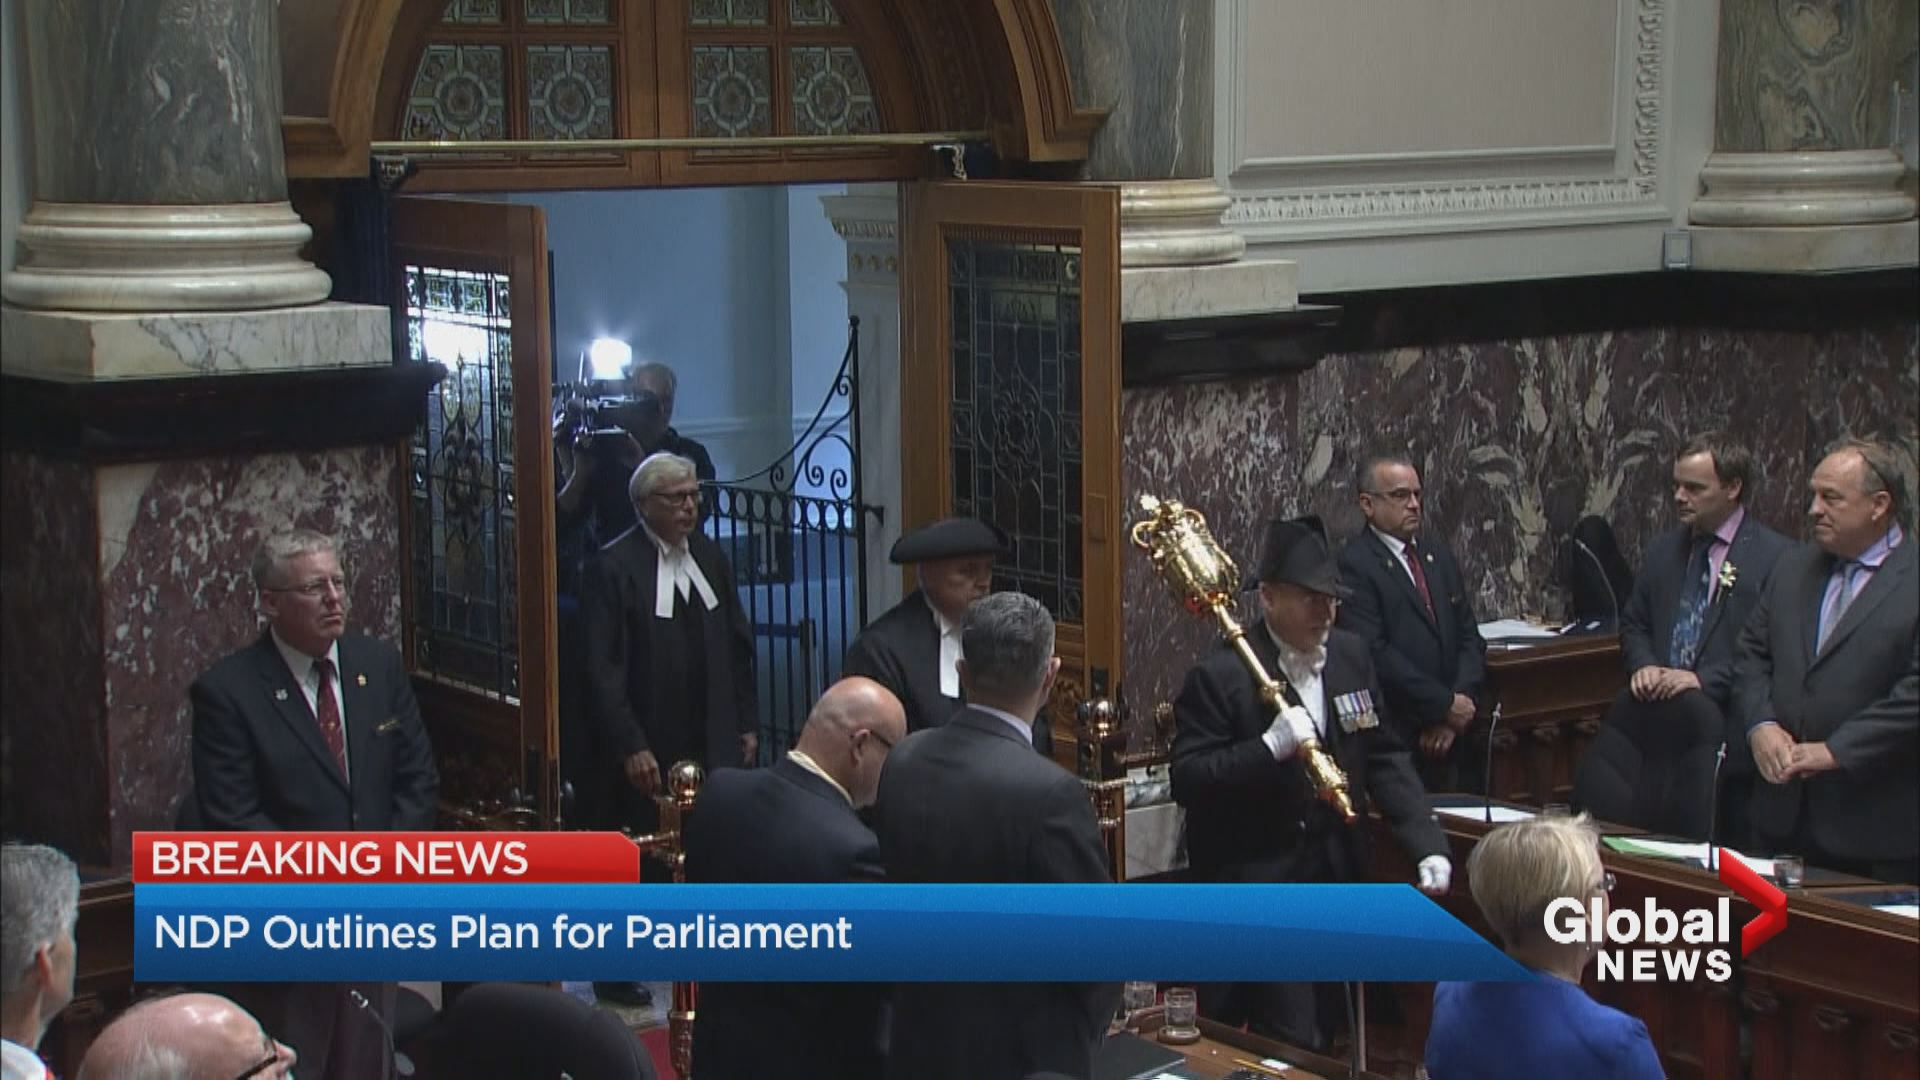 Throne speech confirms NDP reform promises